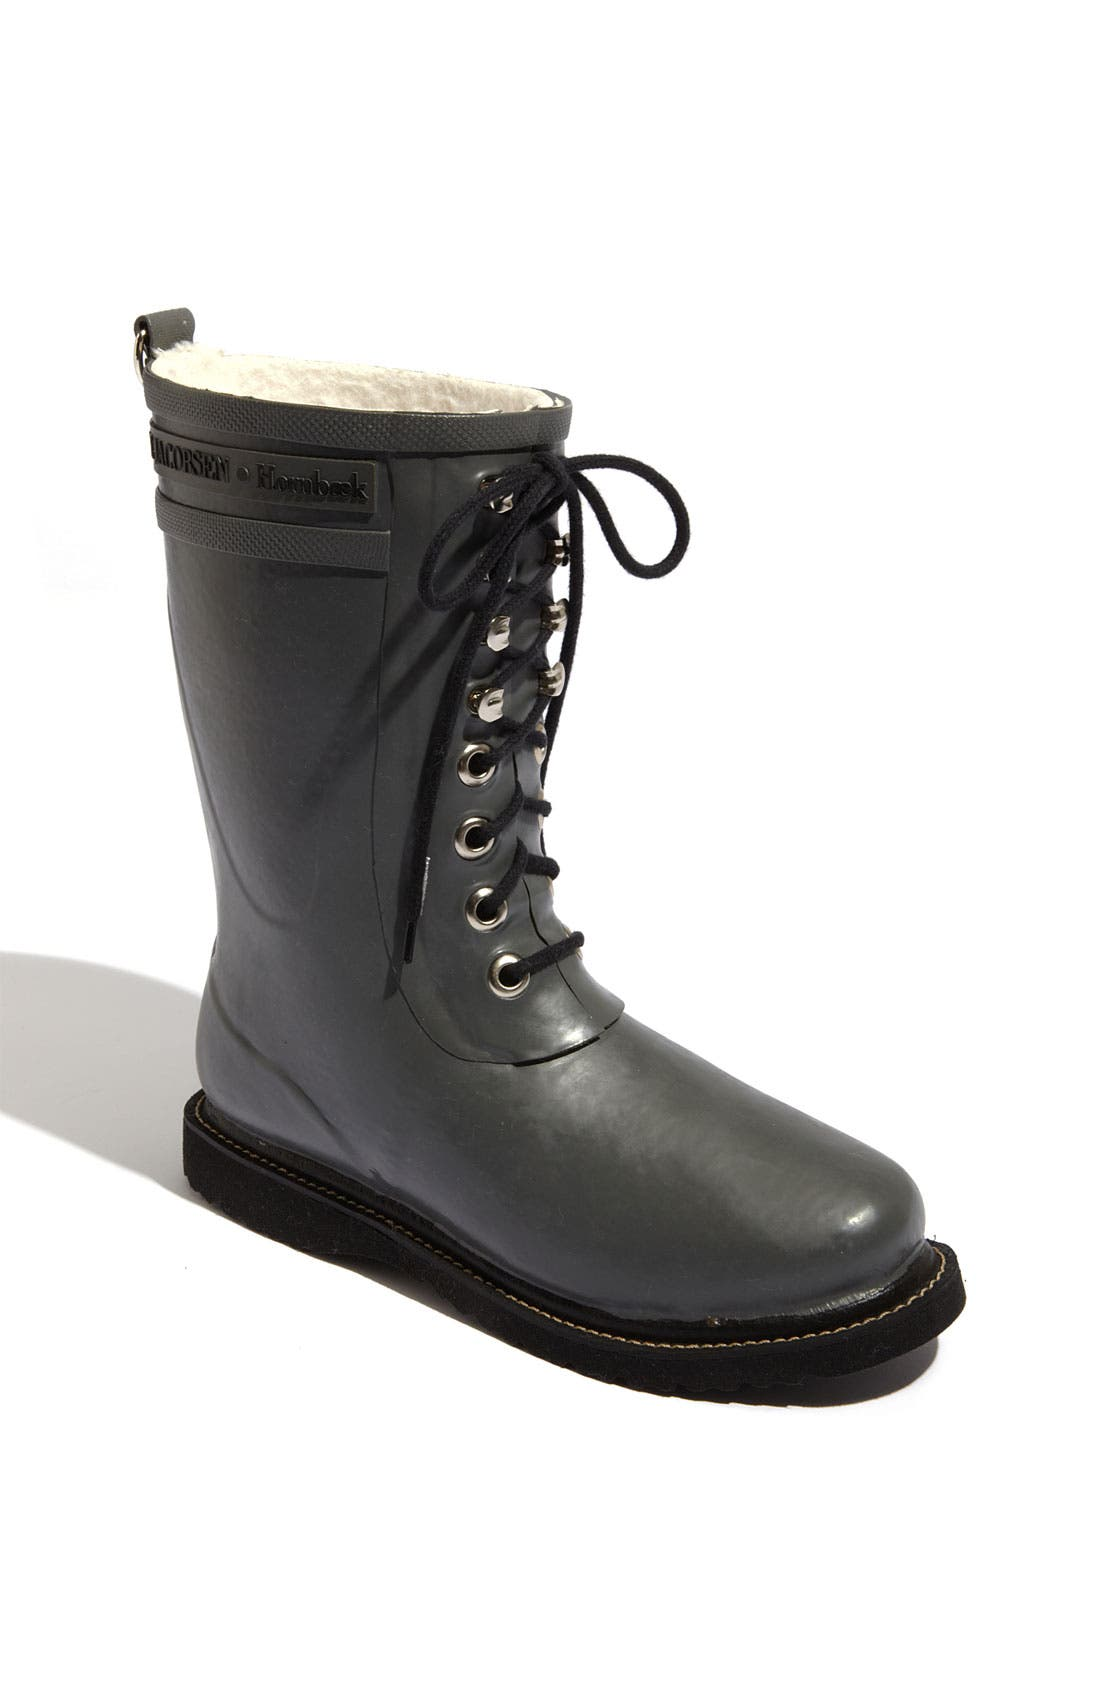 ILSE JACOBSEN Rubber Waterproof Boot in Grey